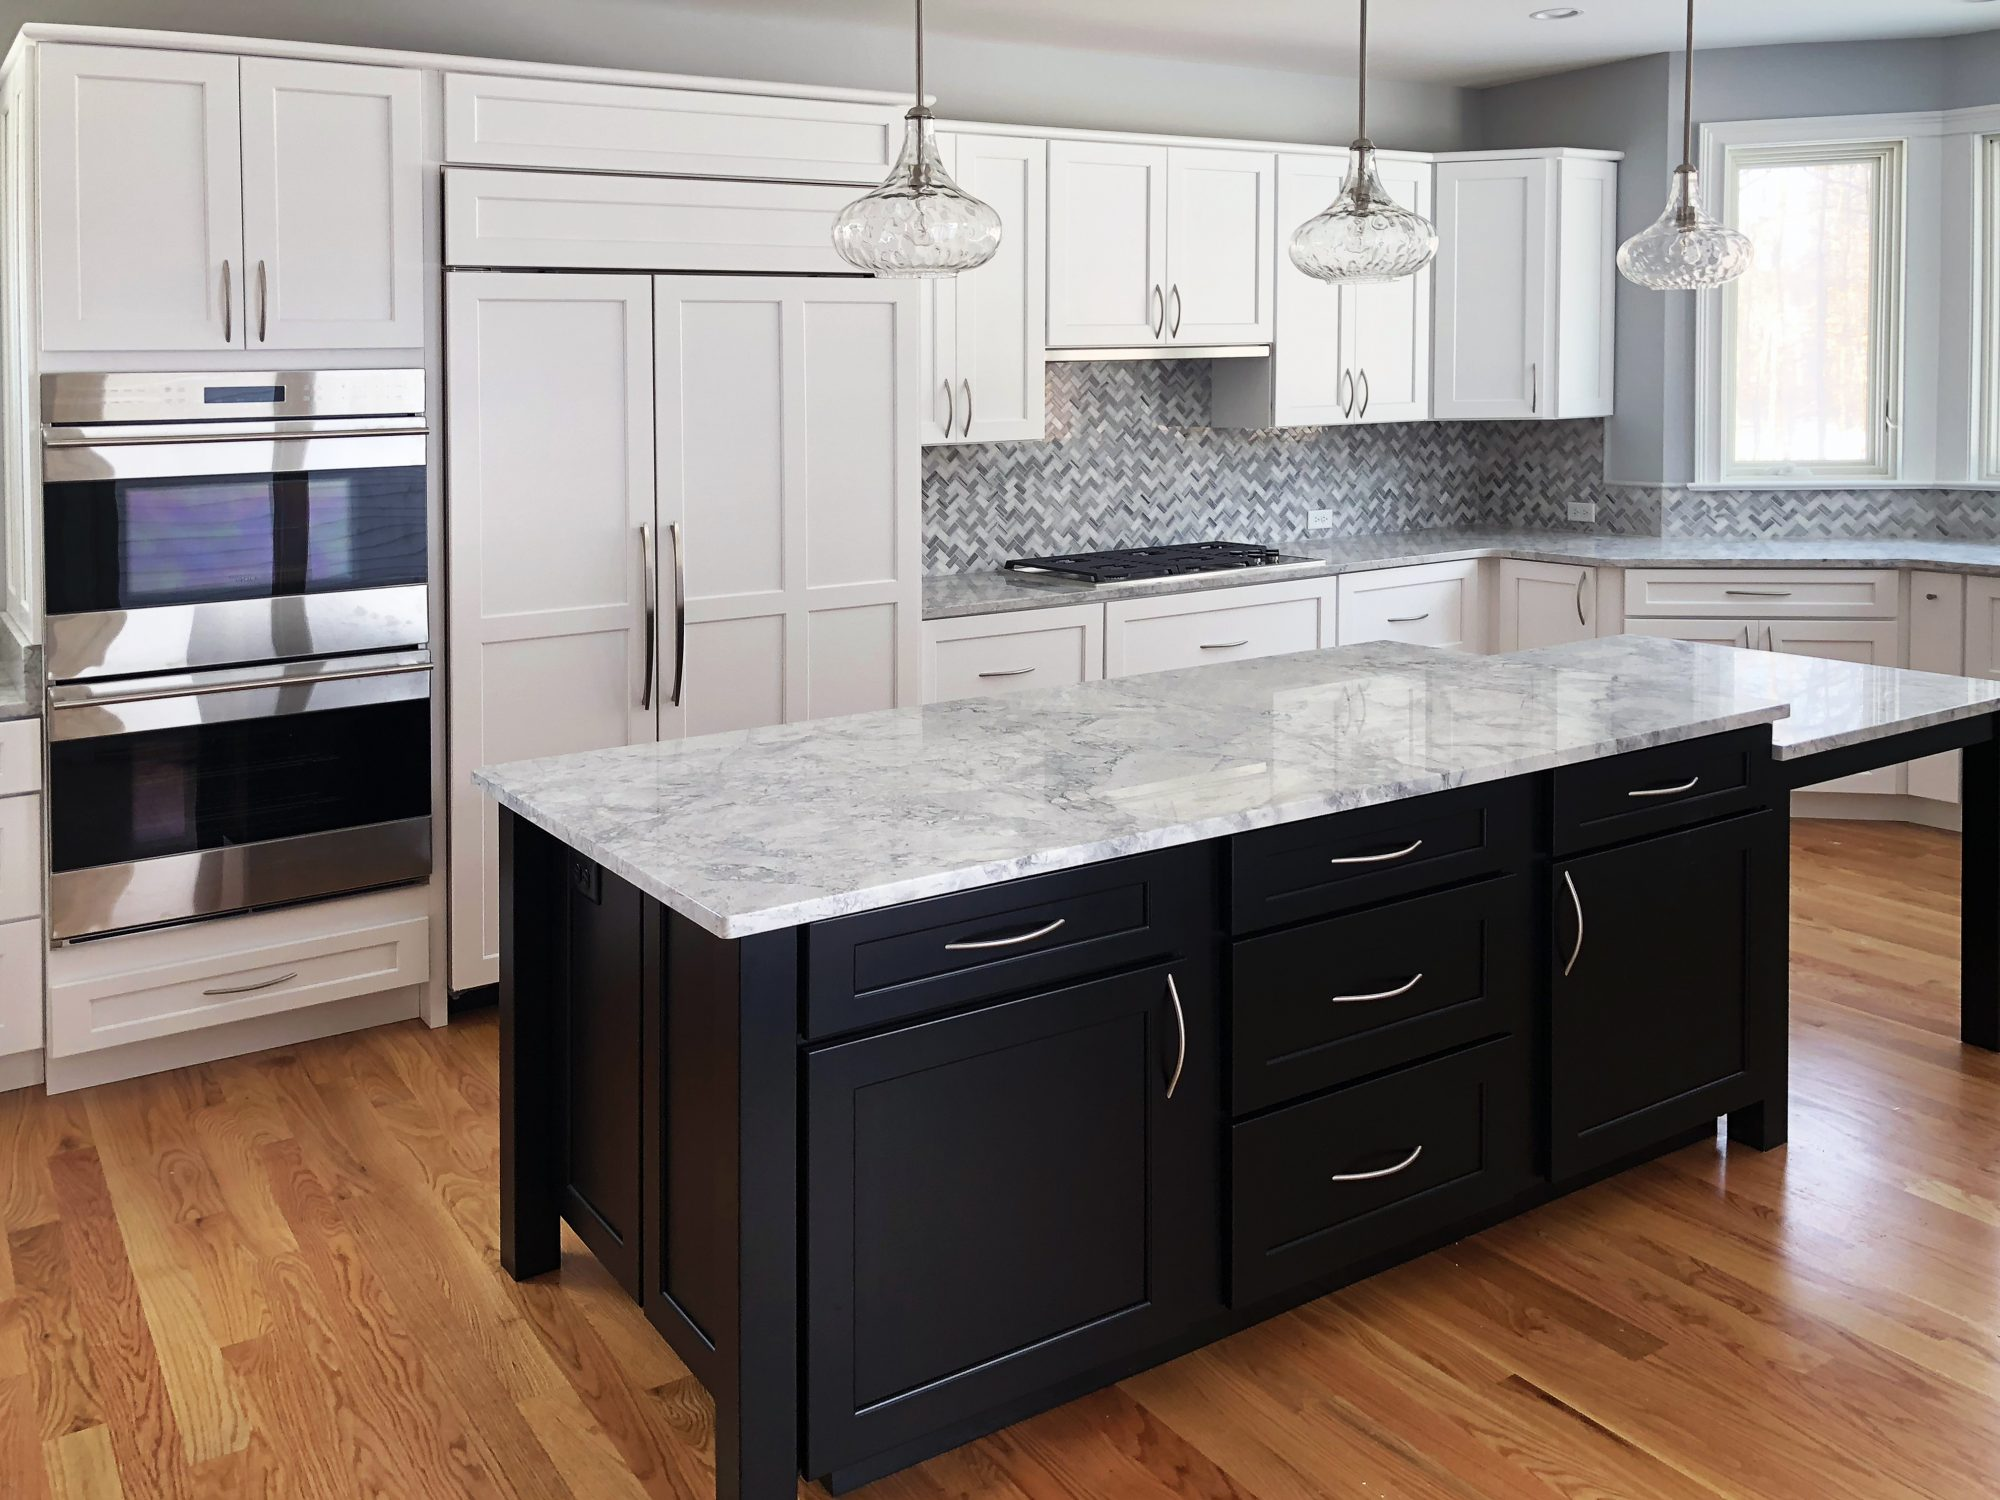 Kelly-Fradet designer Jay Muse designs an East Longmeadow, MA kitchen